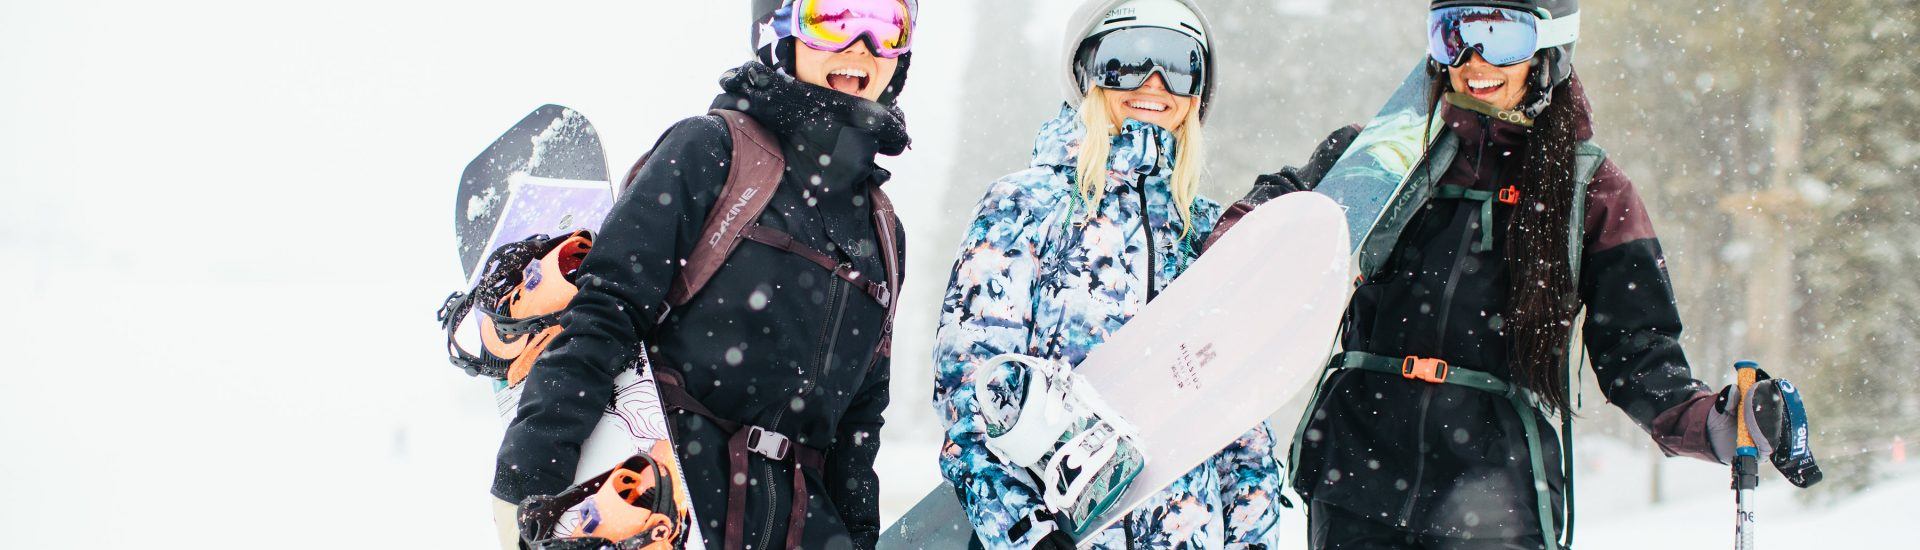 2 female snowboarders and 1 female skier standing together smiling in the snow